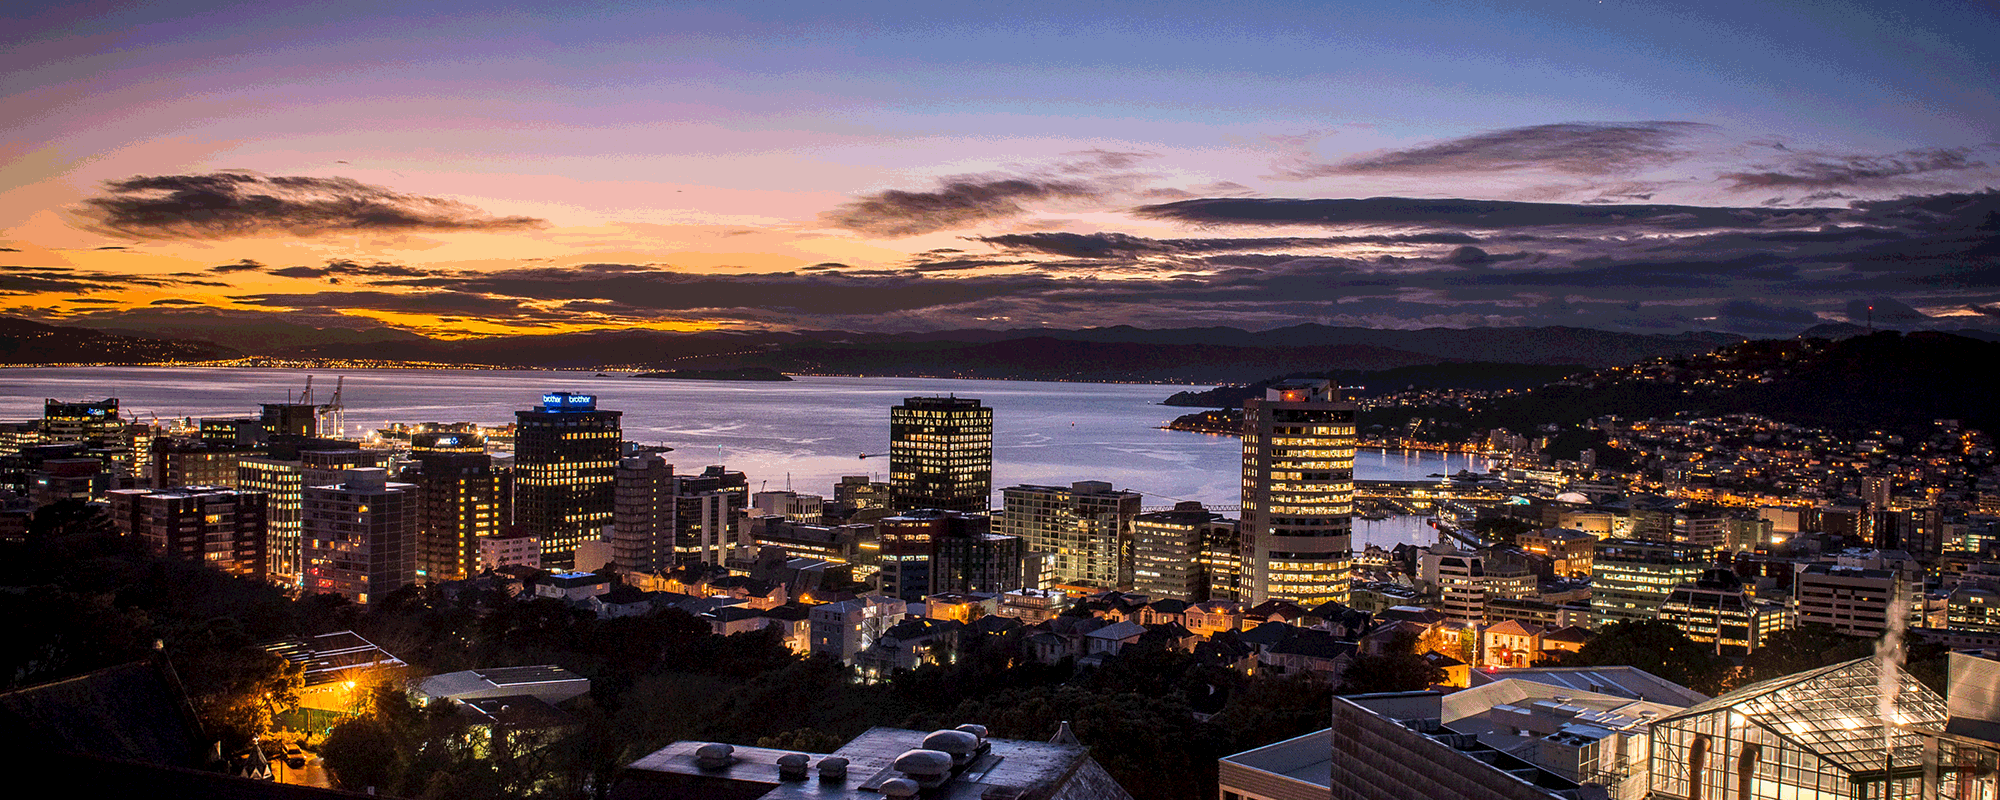 A cityscape image taken at dusk of Wellington.